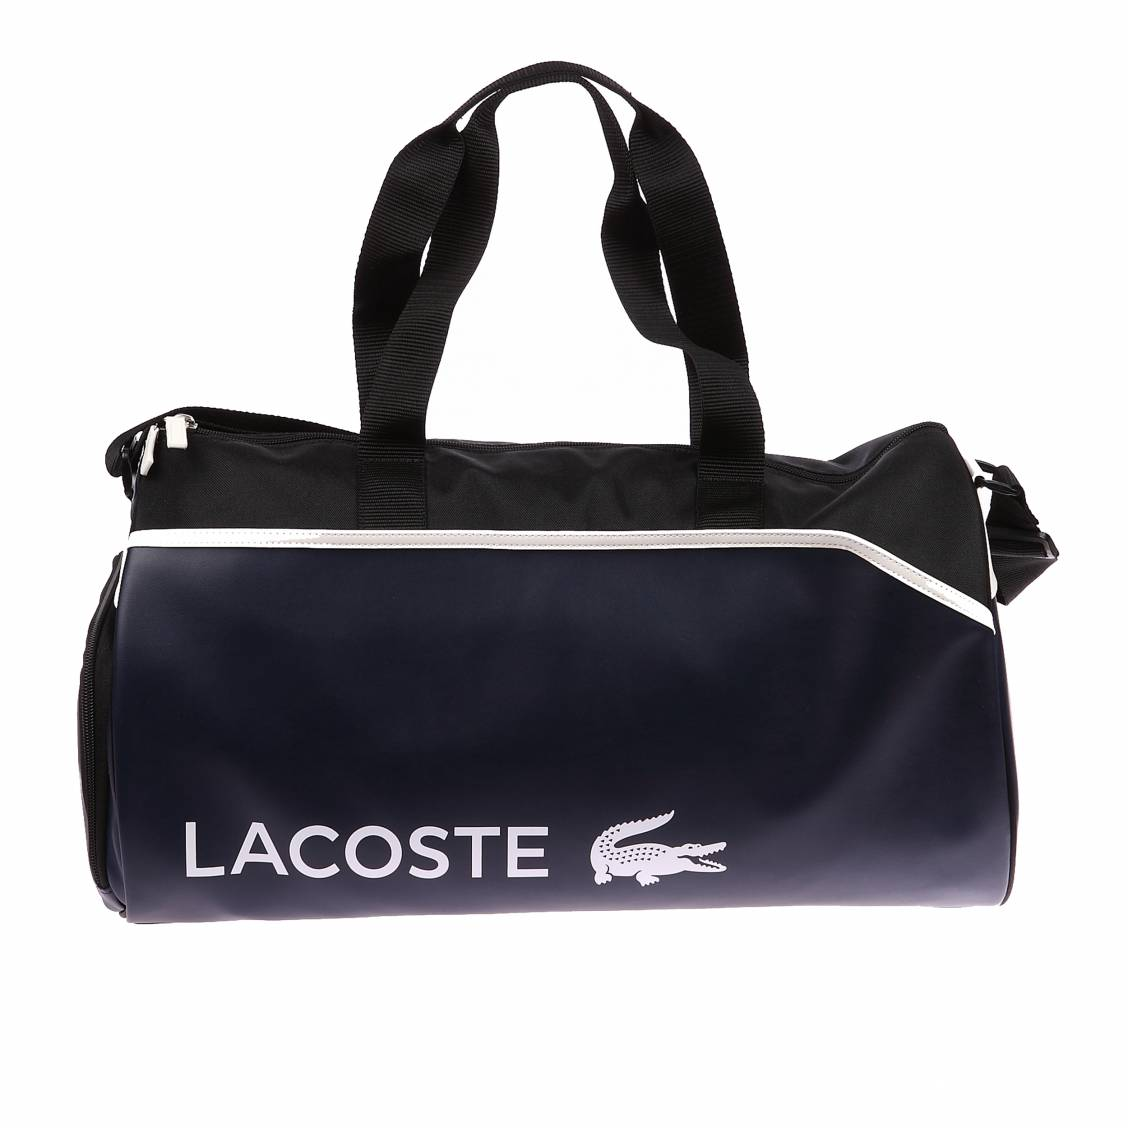 sac de sport lacoste en simili cuir bleu fonc d tails. Black Bedroom Furniture Sets. Home Design Ideas